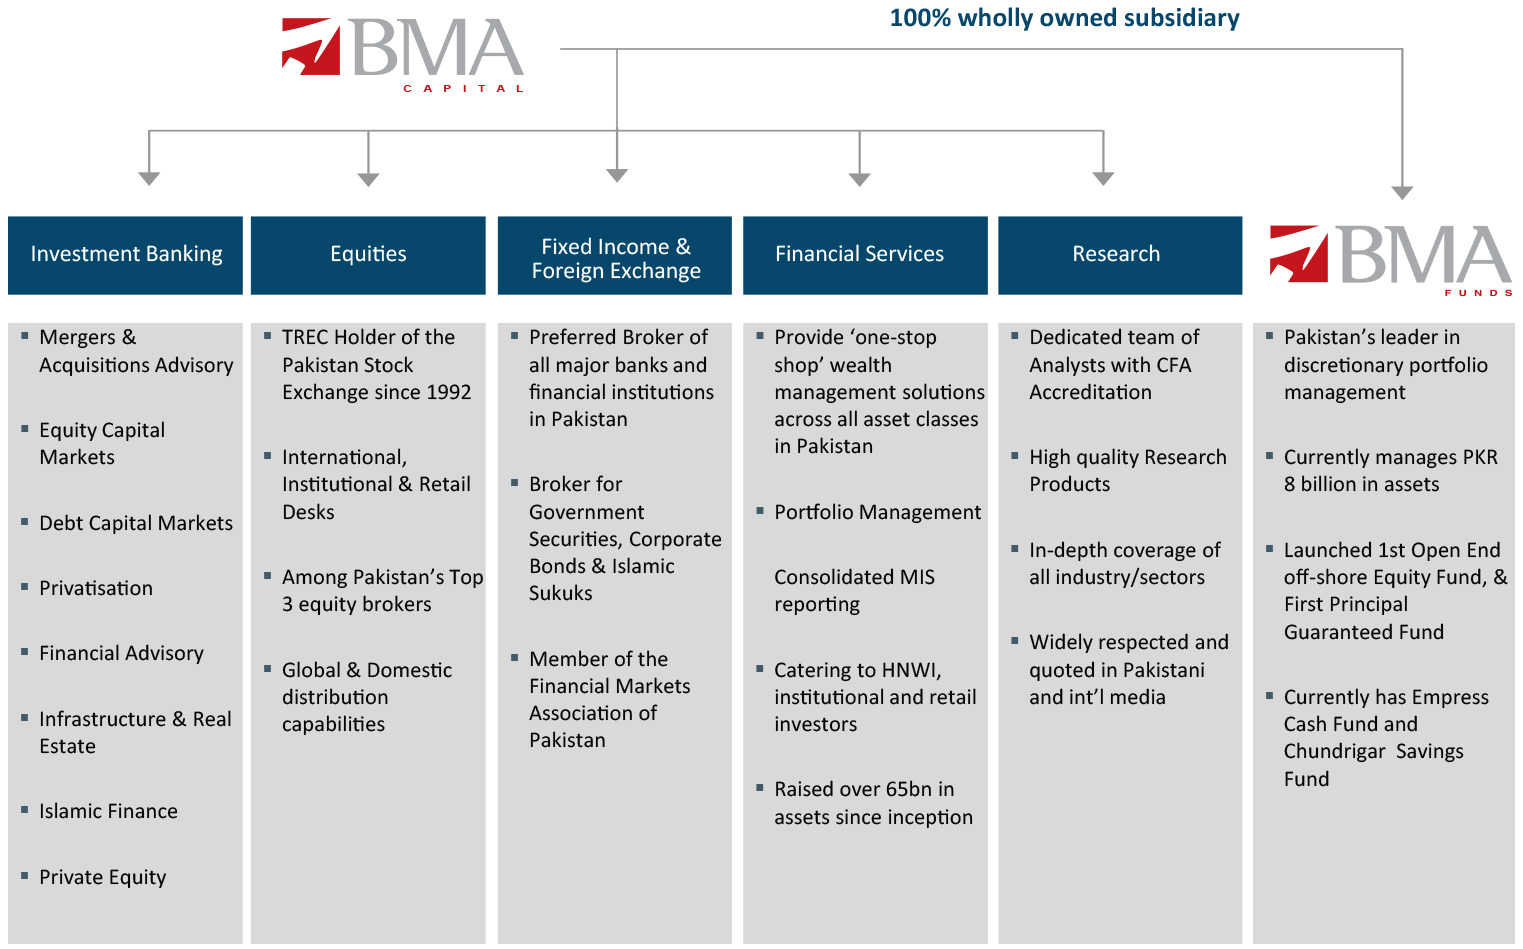 BMA business activities at glance